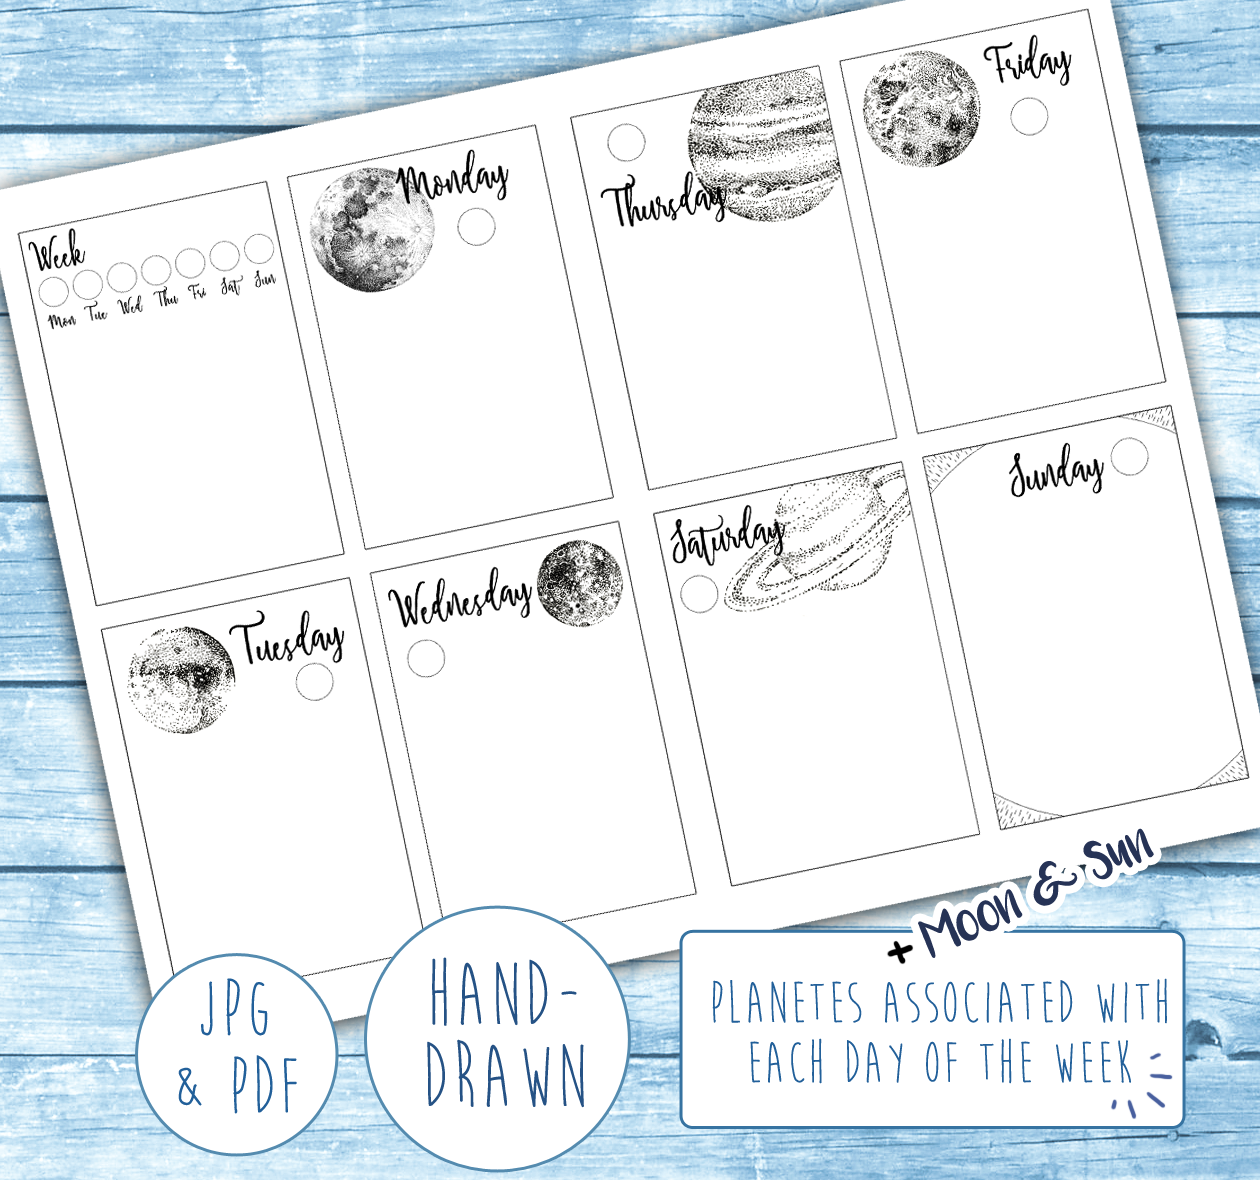 A printable version of my weekly layout for your own planner or bullet journal is now available! The planets, moon, and silhouette of the sun are illustrated in ink and combined with the simple, functional weekly setup I prefer for my own to-do lists. Click the image for the link!